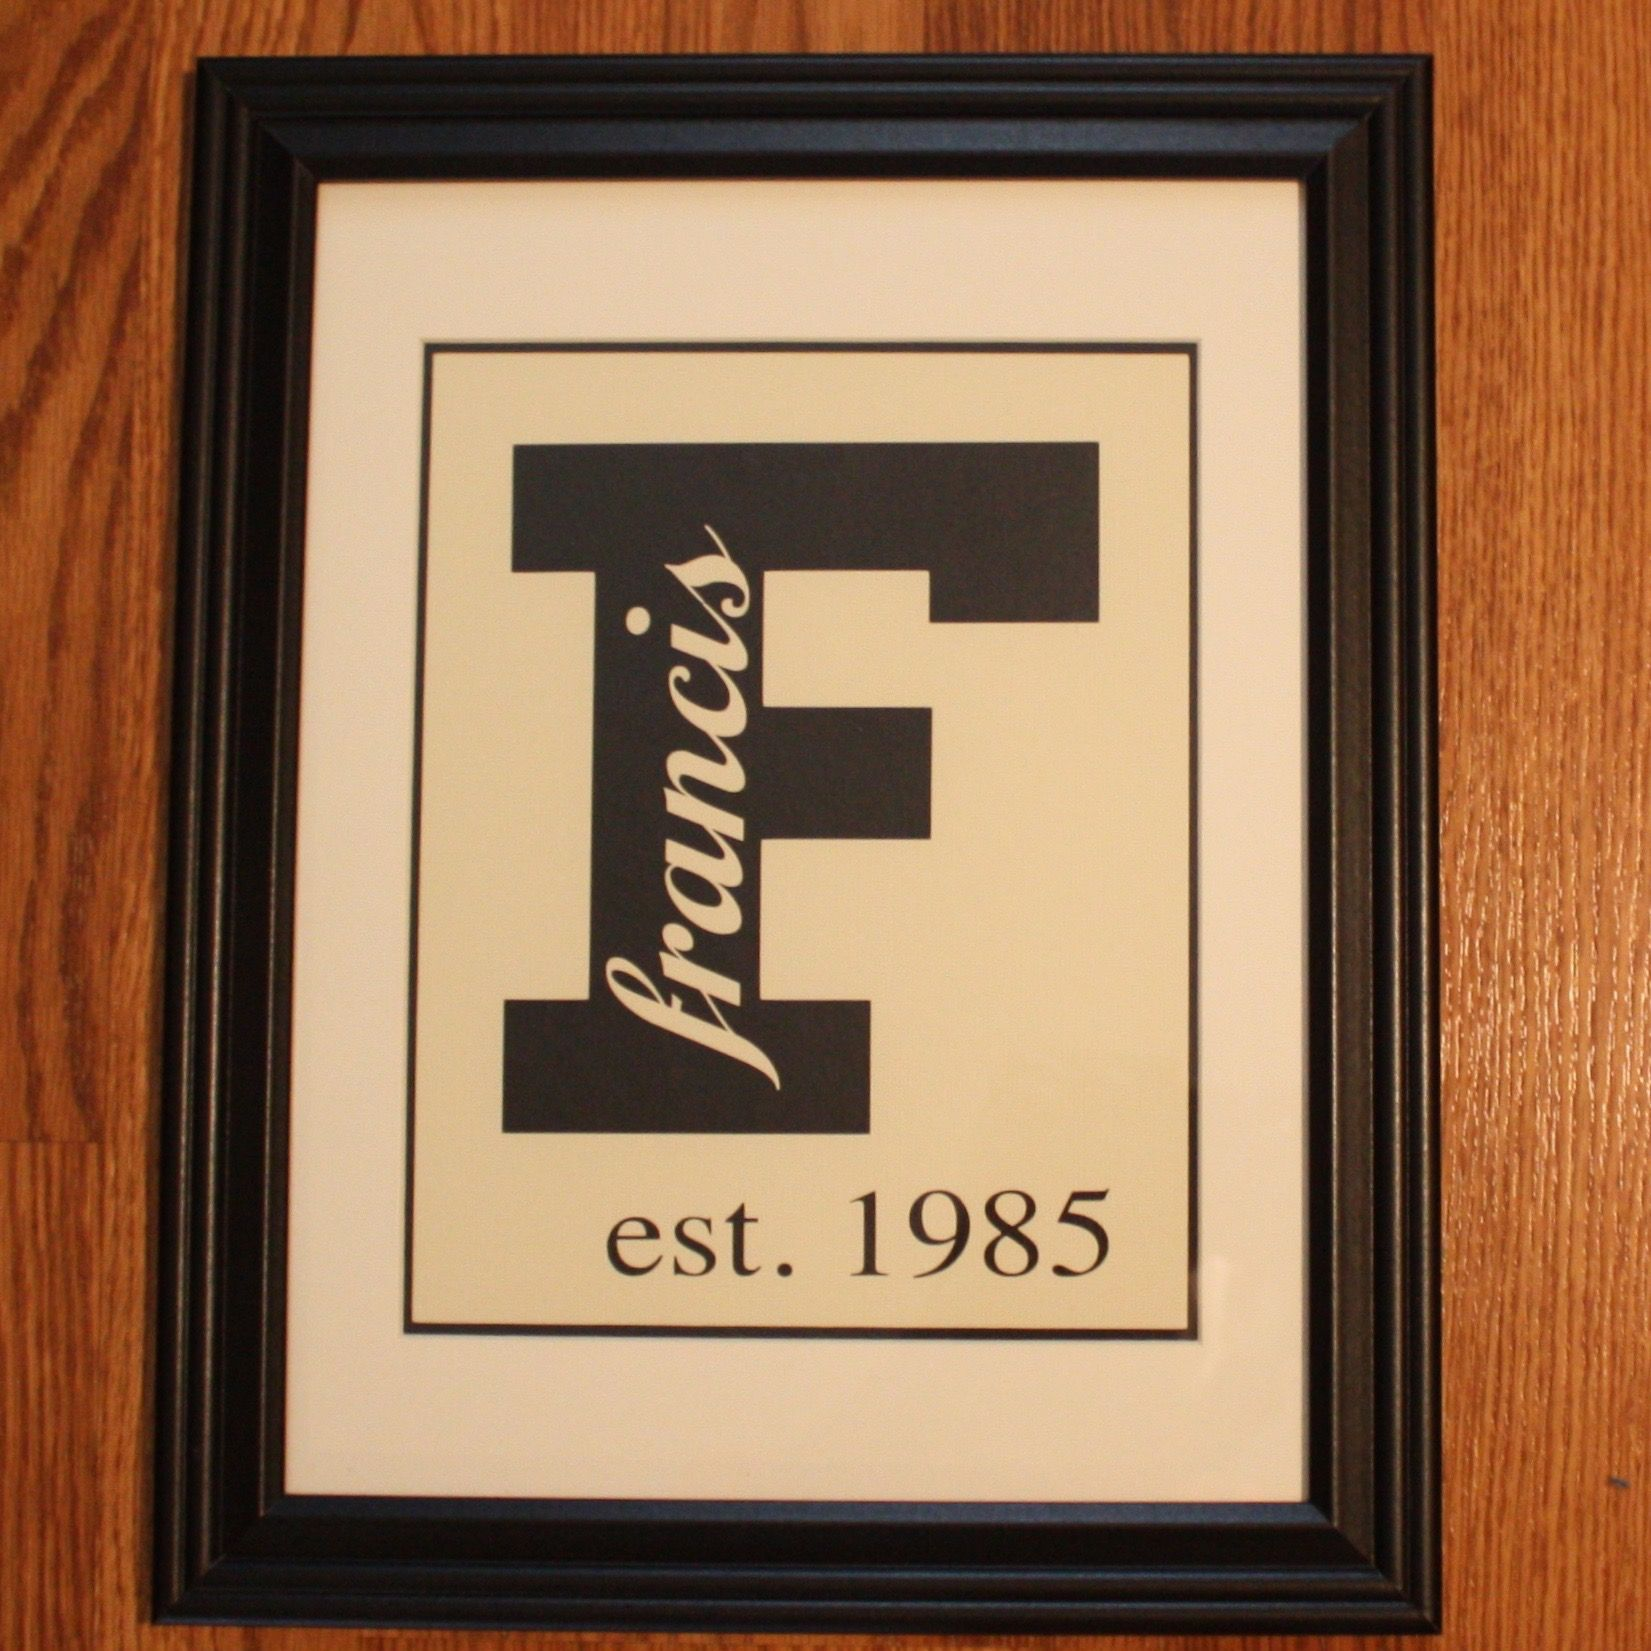 10 x 13 black wood frame with glass matted to 7 12 x 9 12 10 x 13 black wood frame with glass matted to 7 1 jeuxipadfo Gallery